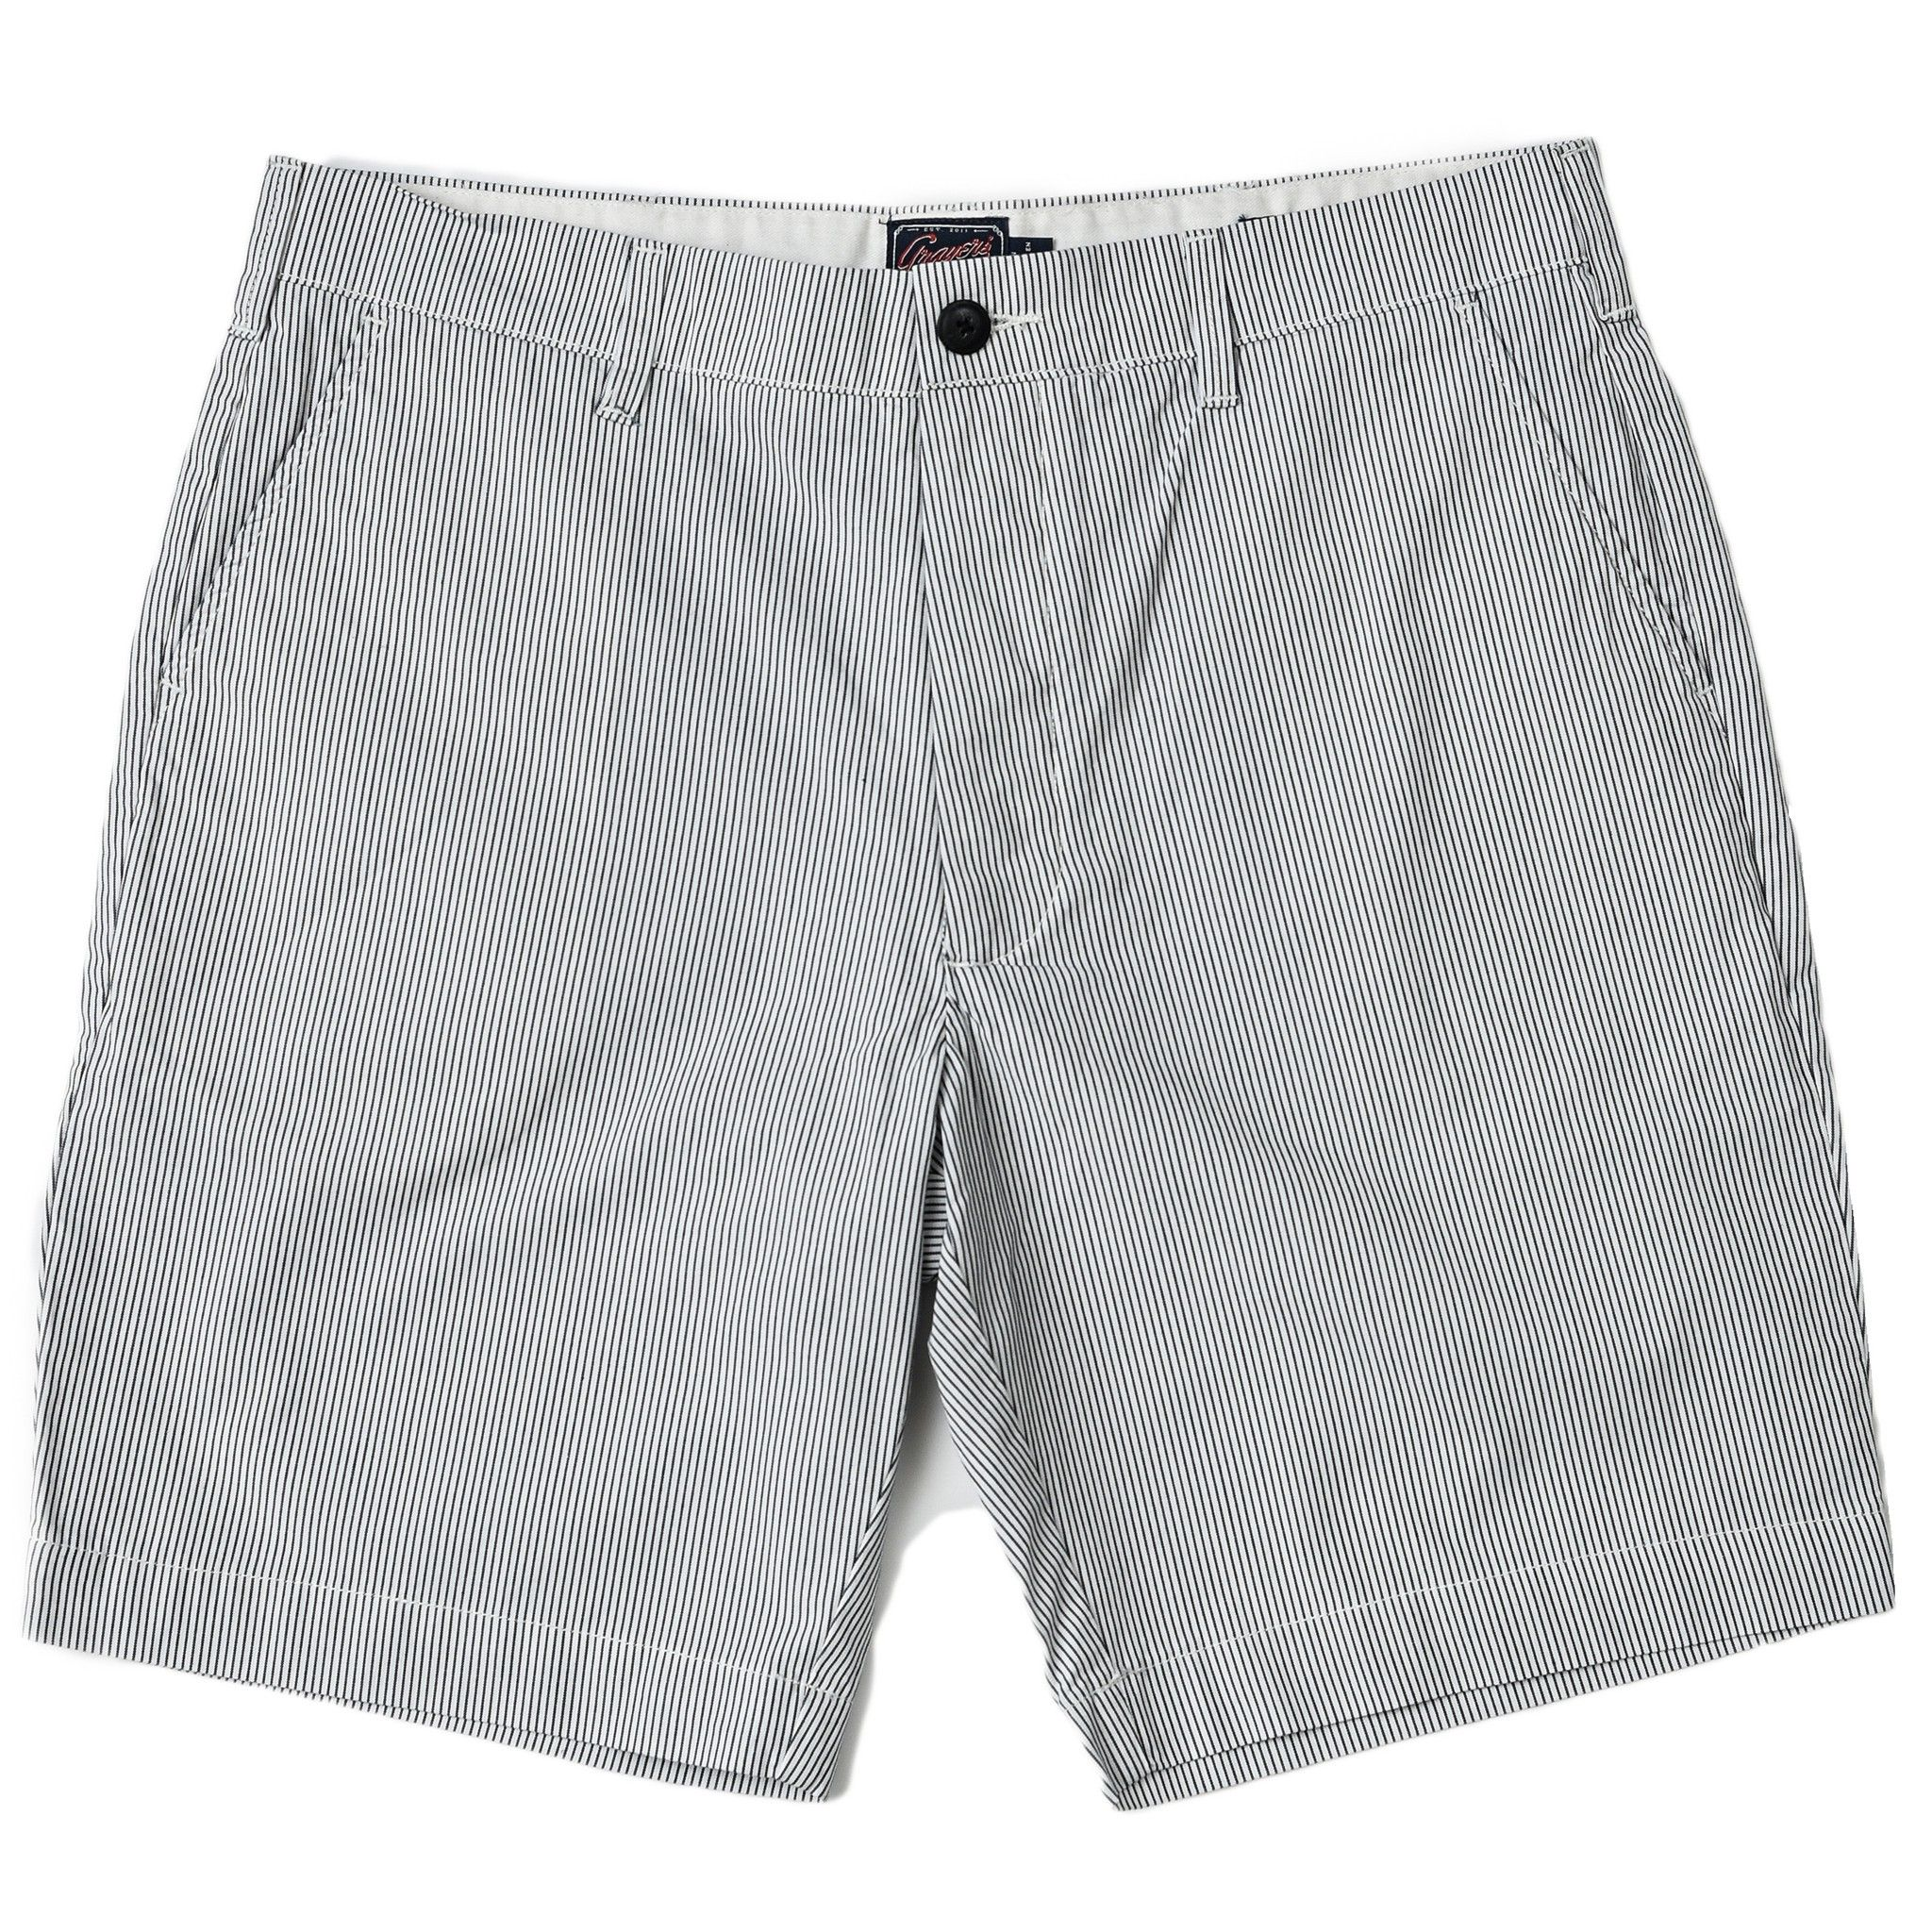 TROUSERS - Bermuda shorts Grayers c0scMXW